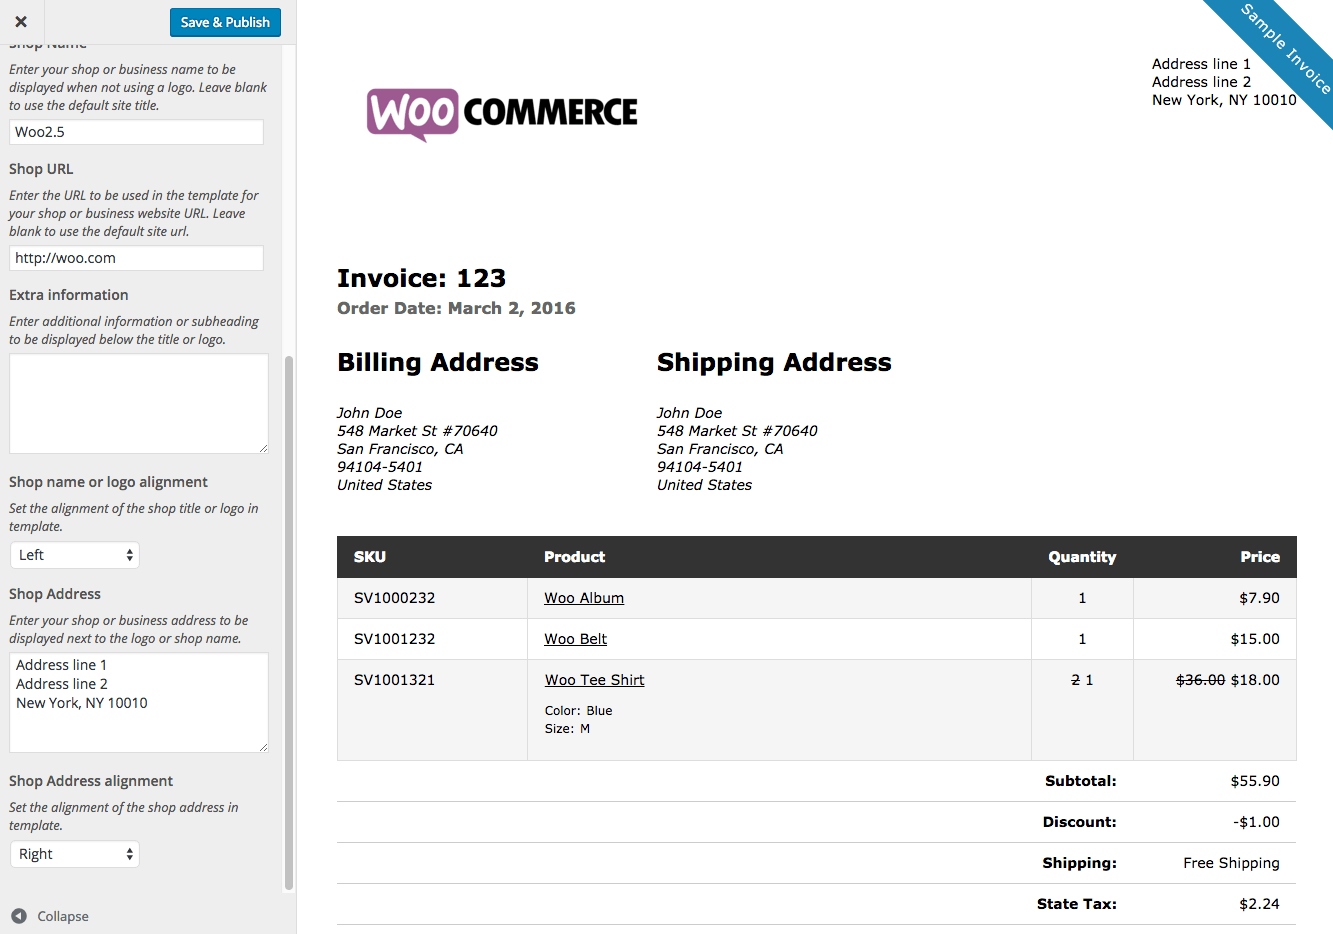 Floobydustus  Winning Woocommerce Print Invoices Amp Packing Lists  Woocommerce Docs With Great Woocommerce Print Invoices  Packing Lists Customizer With Cool Invoice Tracker Also Zoho Invoicing In Addition Make Invoice Online And How To Send Invoice On Ebay As Well As Invoice Free Template Additionally How To Write A Invoice From Docswoocommercecom With Floobydustus  Great Woocommerce Print Invoices Amp Packing Lists  Woocommerce Docs With Cool Woocommerce Print Invoices  Packing Lists Customizer And Winning Invoice Tracker Also Zoho Invoicing In Addition Make Invoice Online From Docswoocommercecom